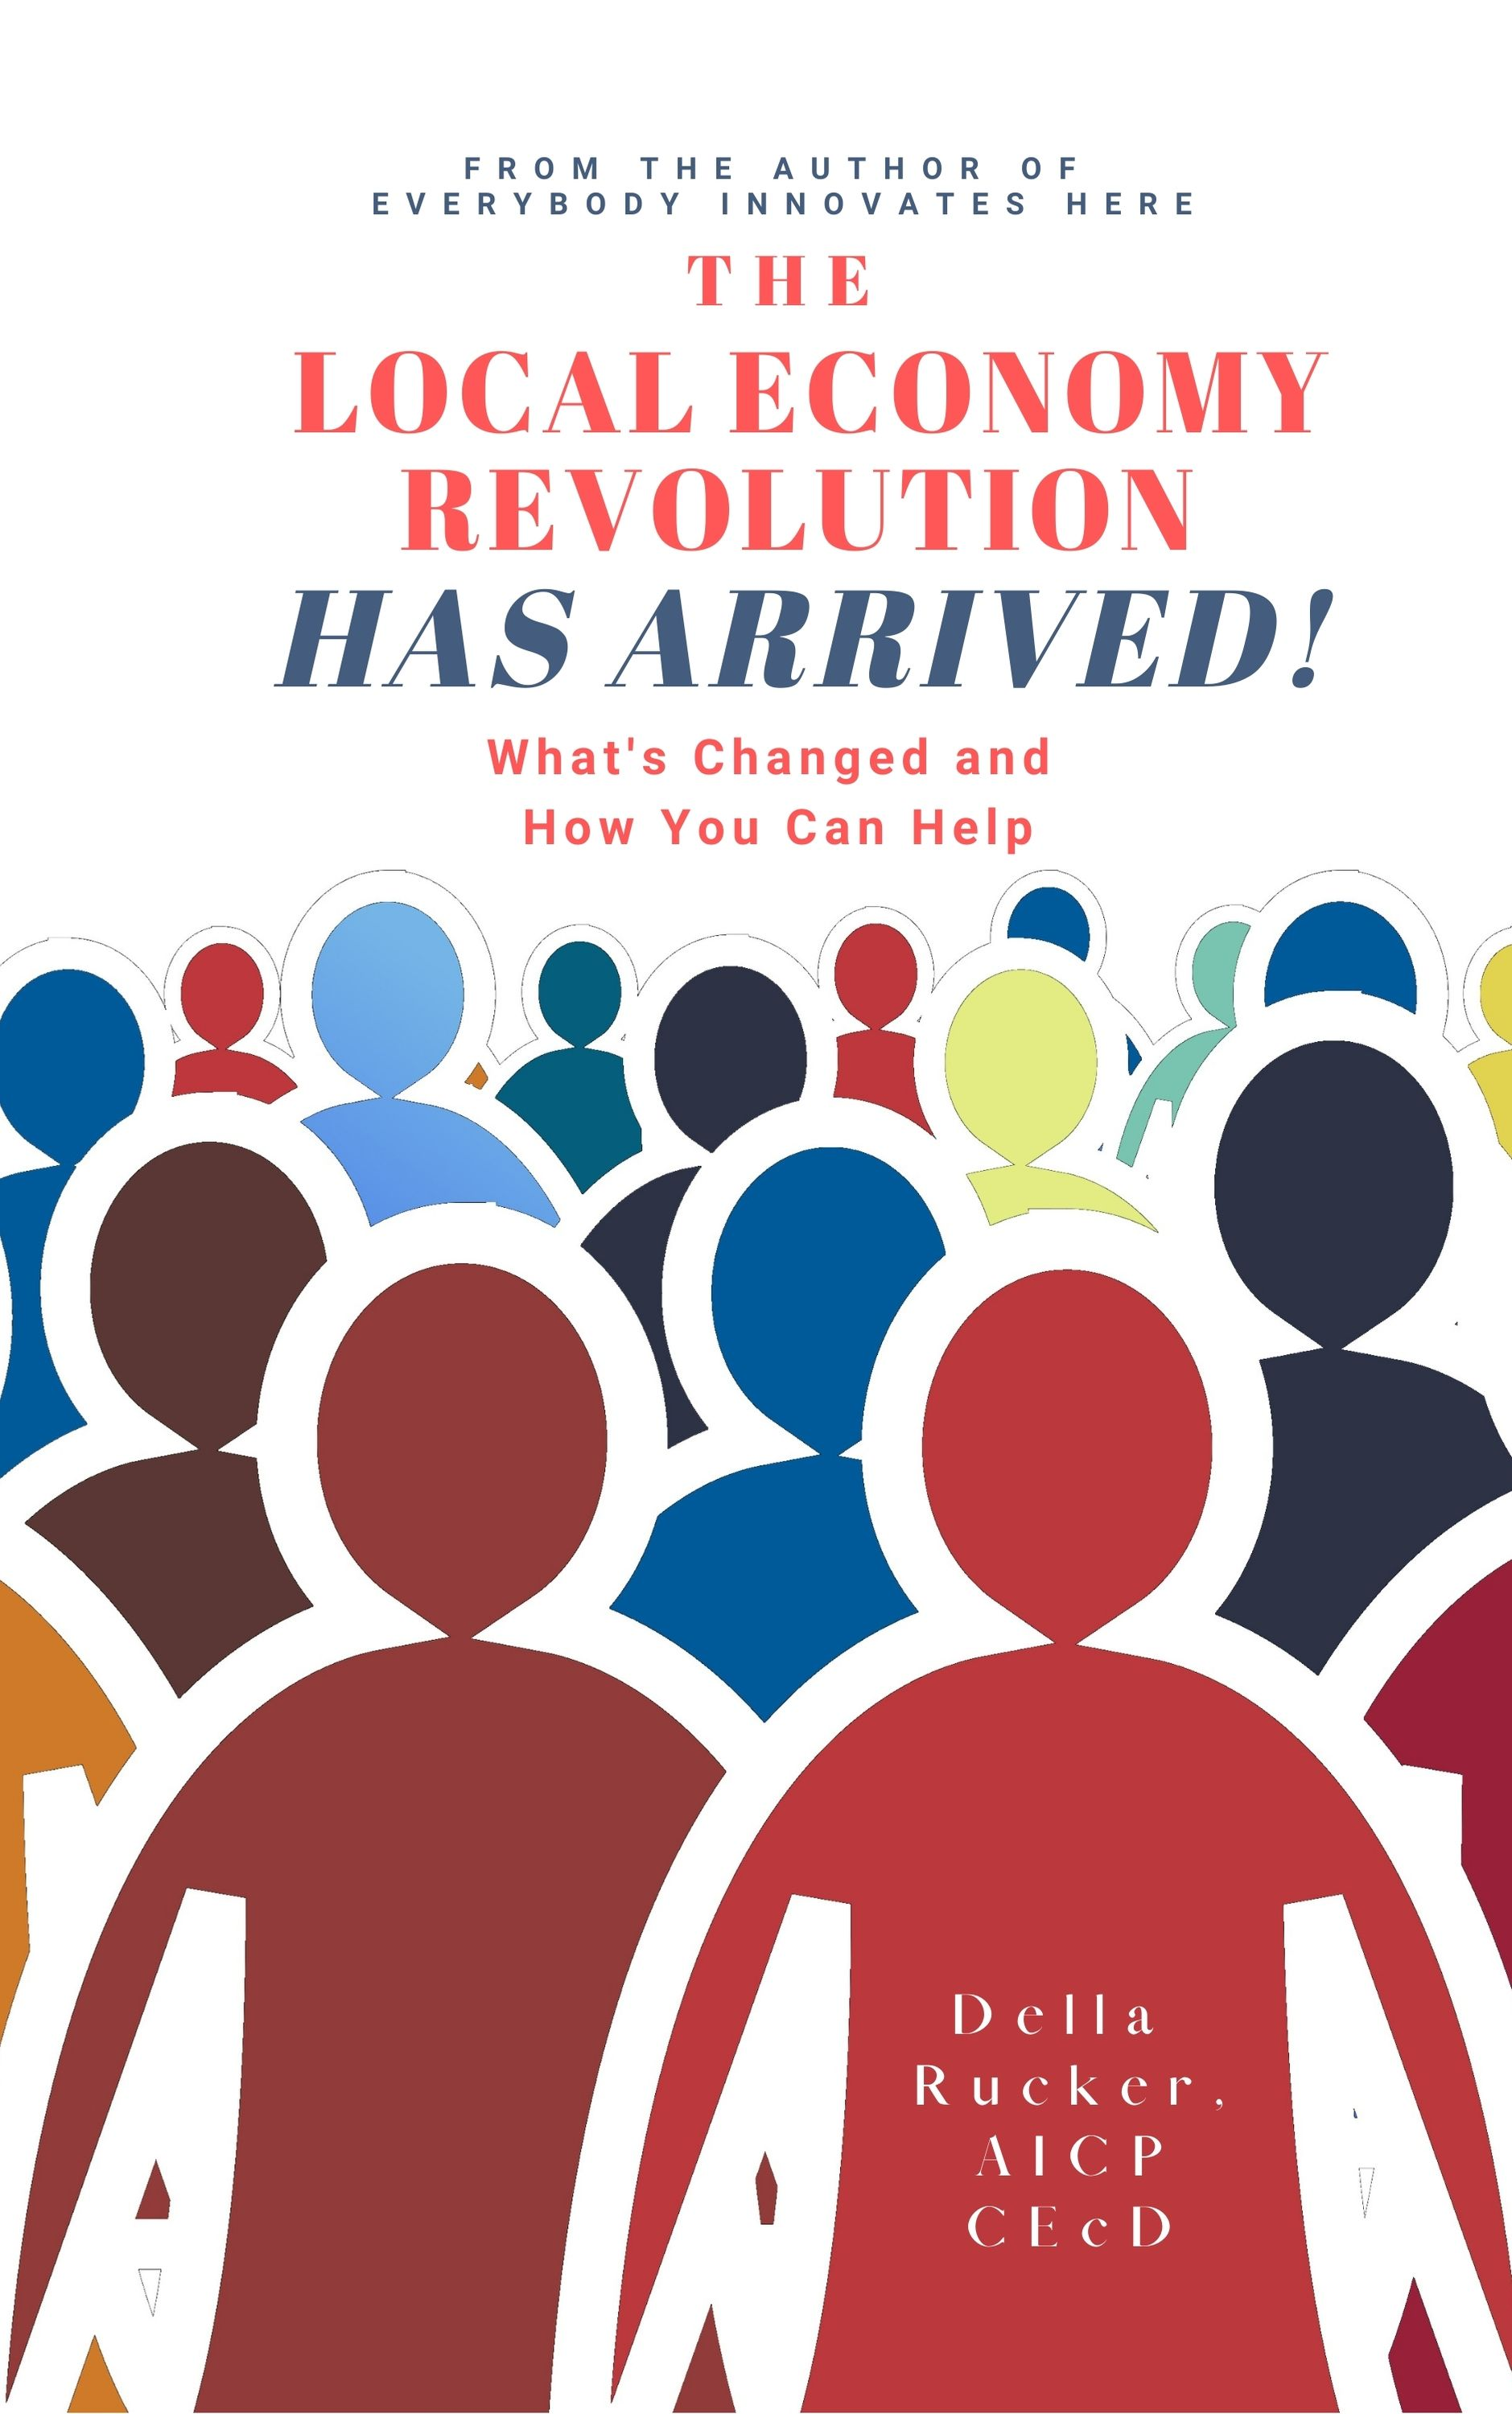 Local Economy Revolution Has Arrived cover final (1)